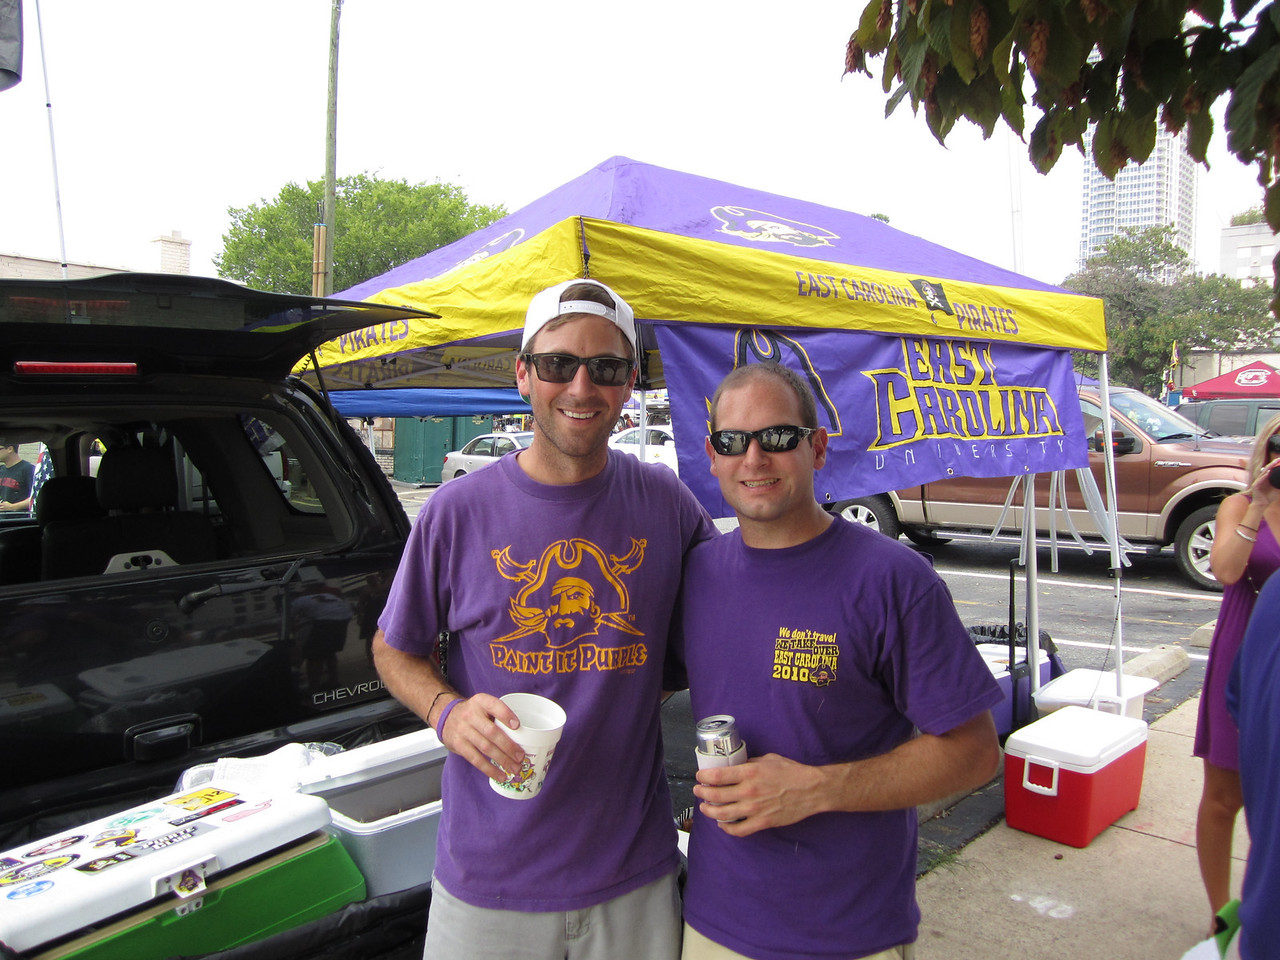 9/3/2011 ECU vs South Carolina  Adam, Jon